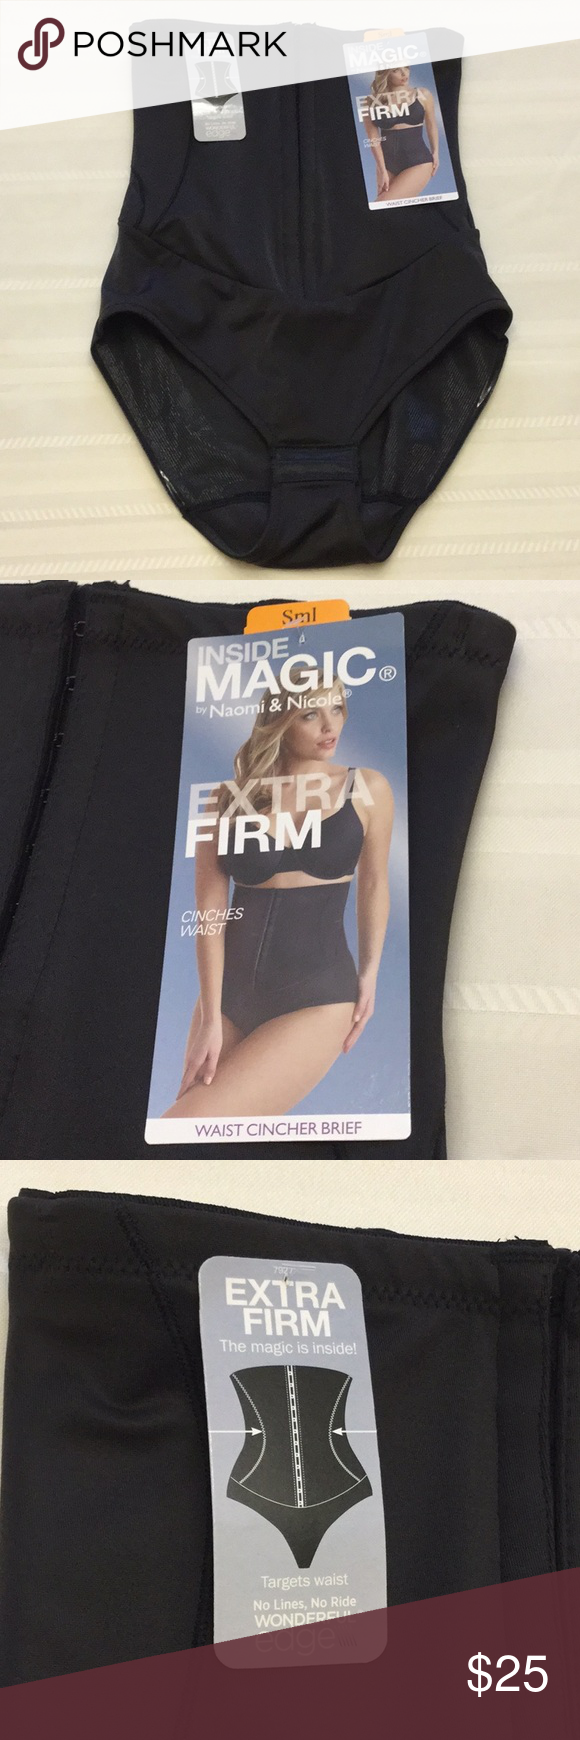 21e86ec2a34 Inside Magic Extra Firm Waist Cincher Brief Black Inside Magic by Naomi   Nicole  Extra Firm